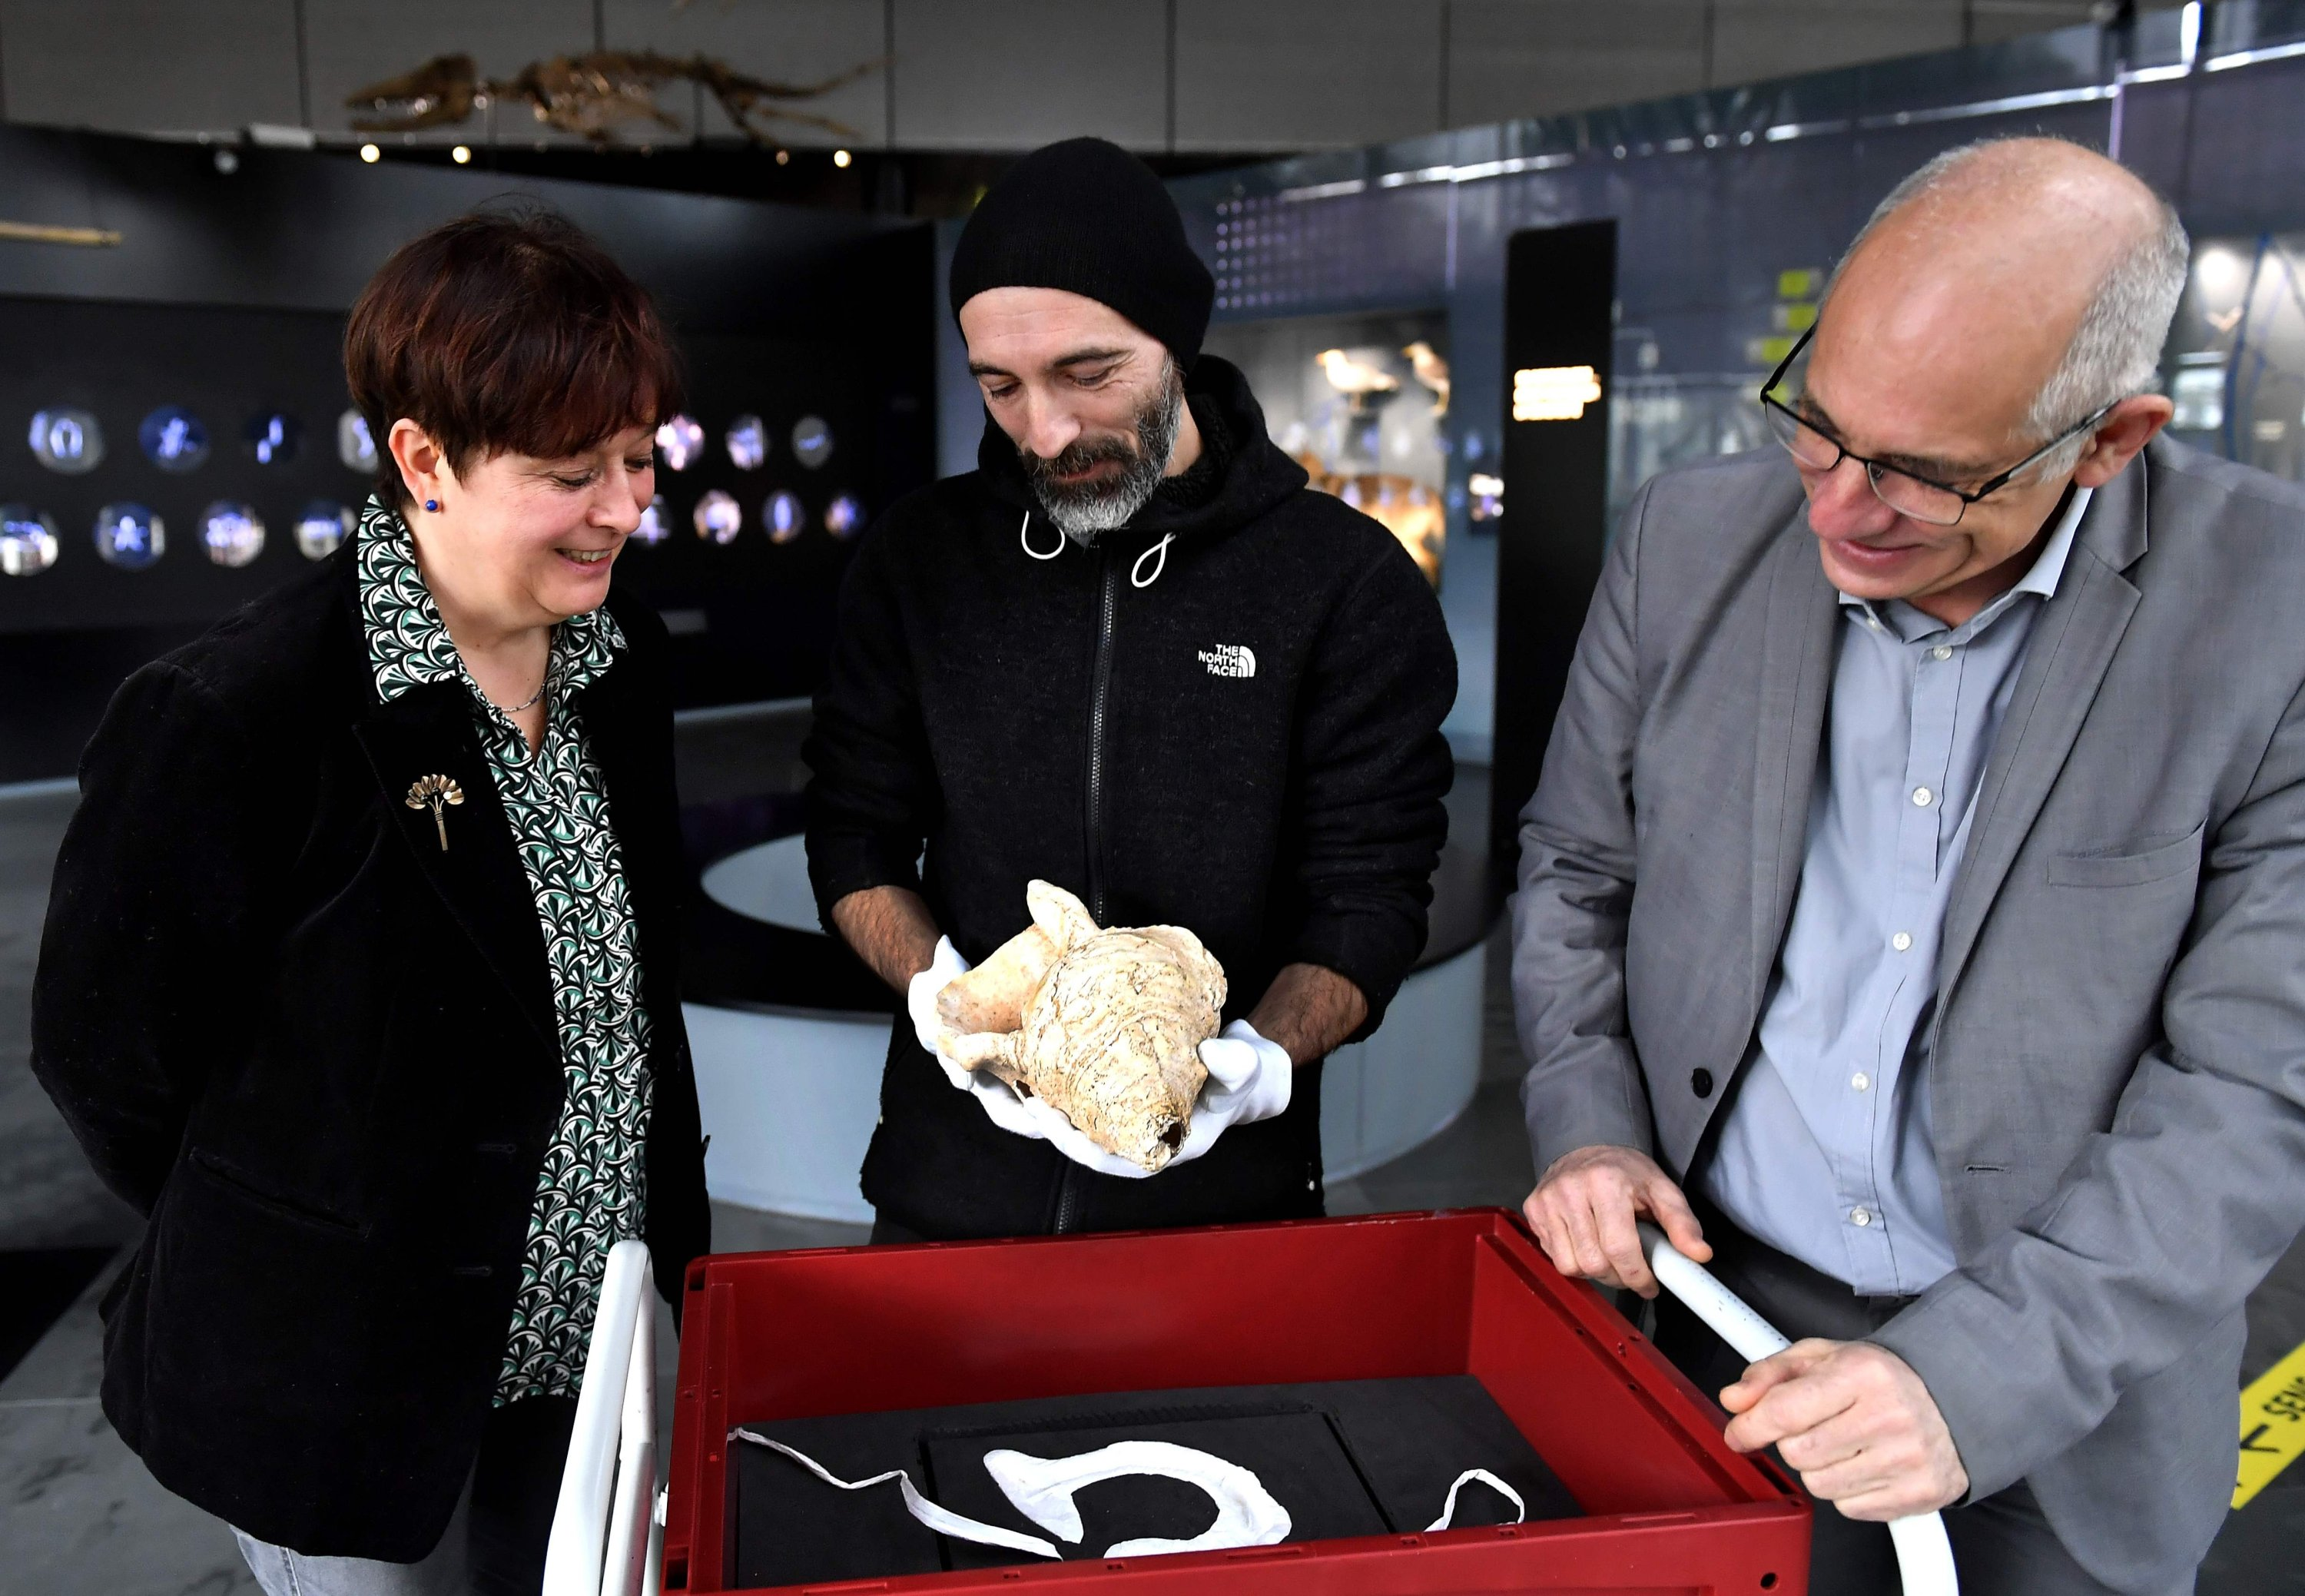 French director of the Museum of Natural History, Francis Duranthon (R), assistant Guillaume Fleury, and archaeologist and CNRS researcher Carole Fritz (L) stand by the shell at the museum in Toulouse on Feb. 10, 2021. (AFP Photo)